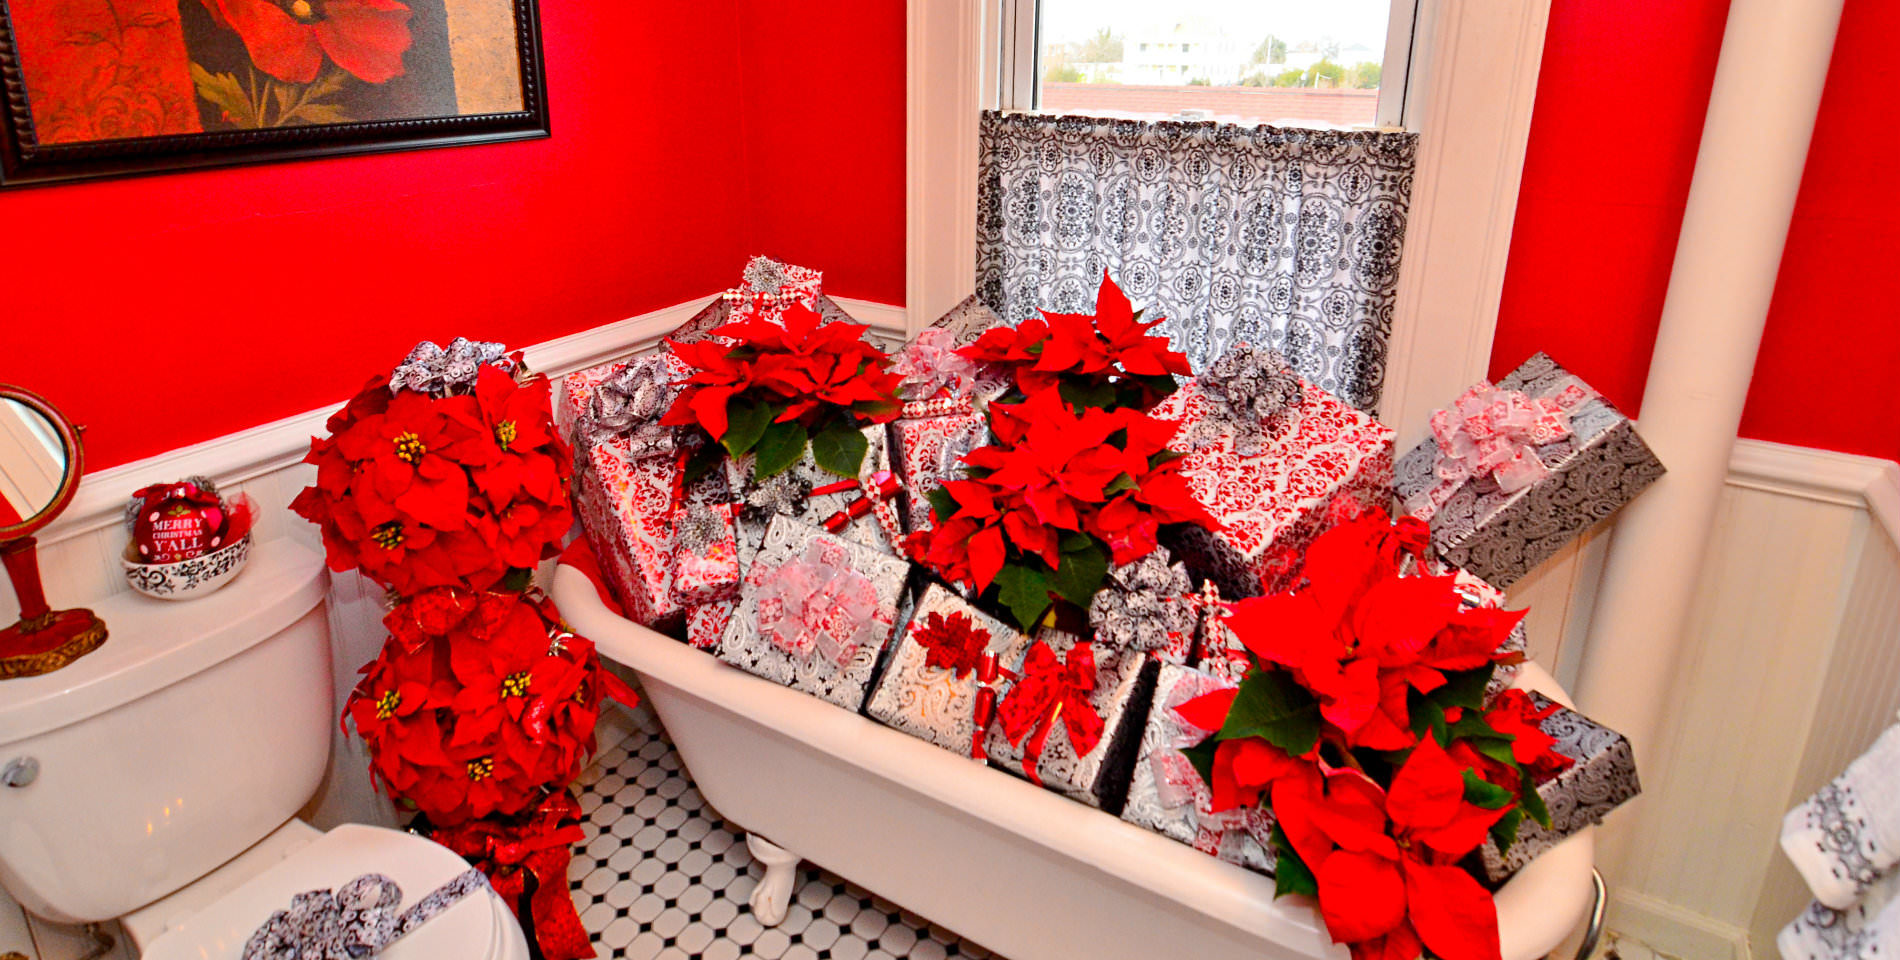 A dozen red poinsettias rest on multiple wrapped and bowed holiday gifts in a white clawfoot tub.